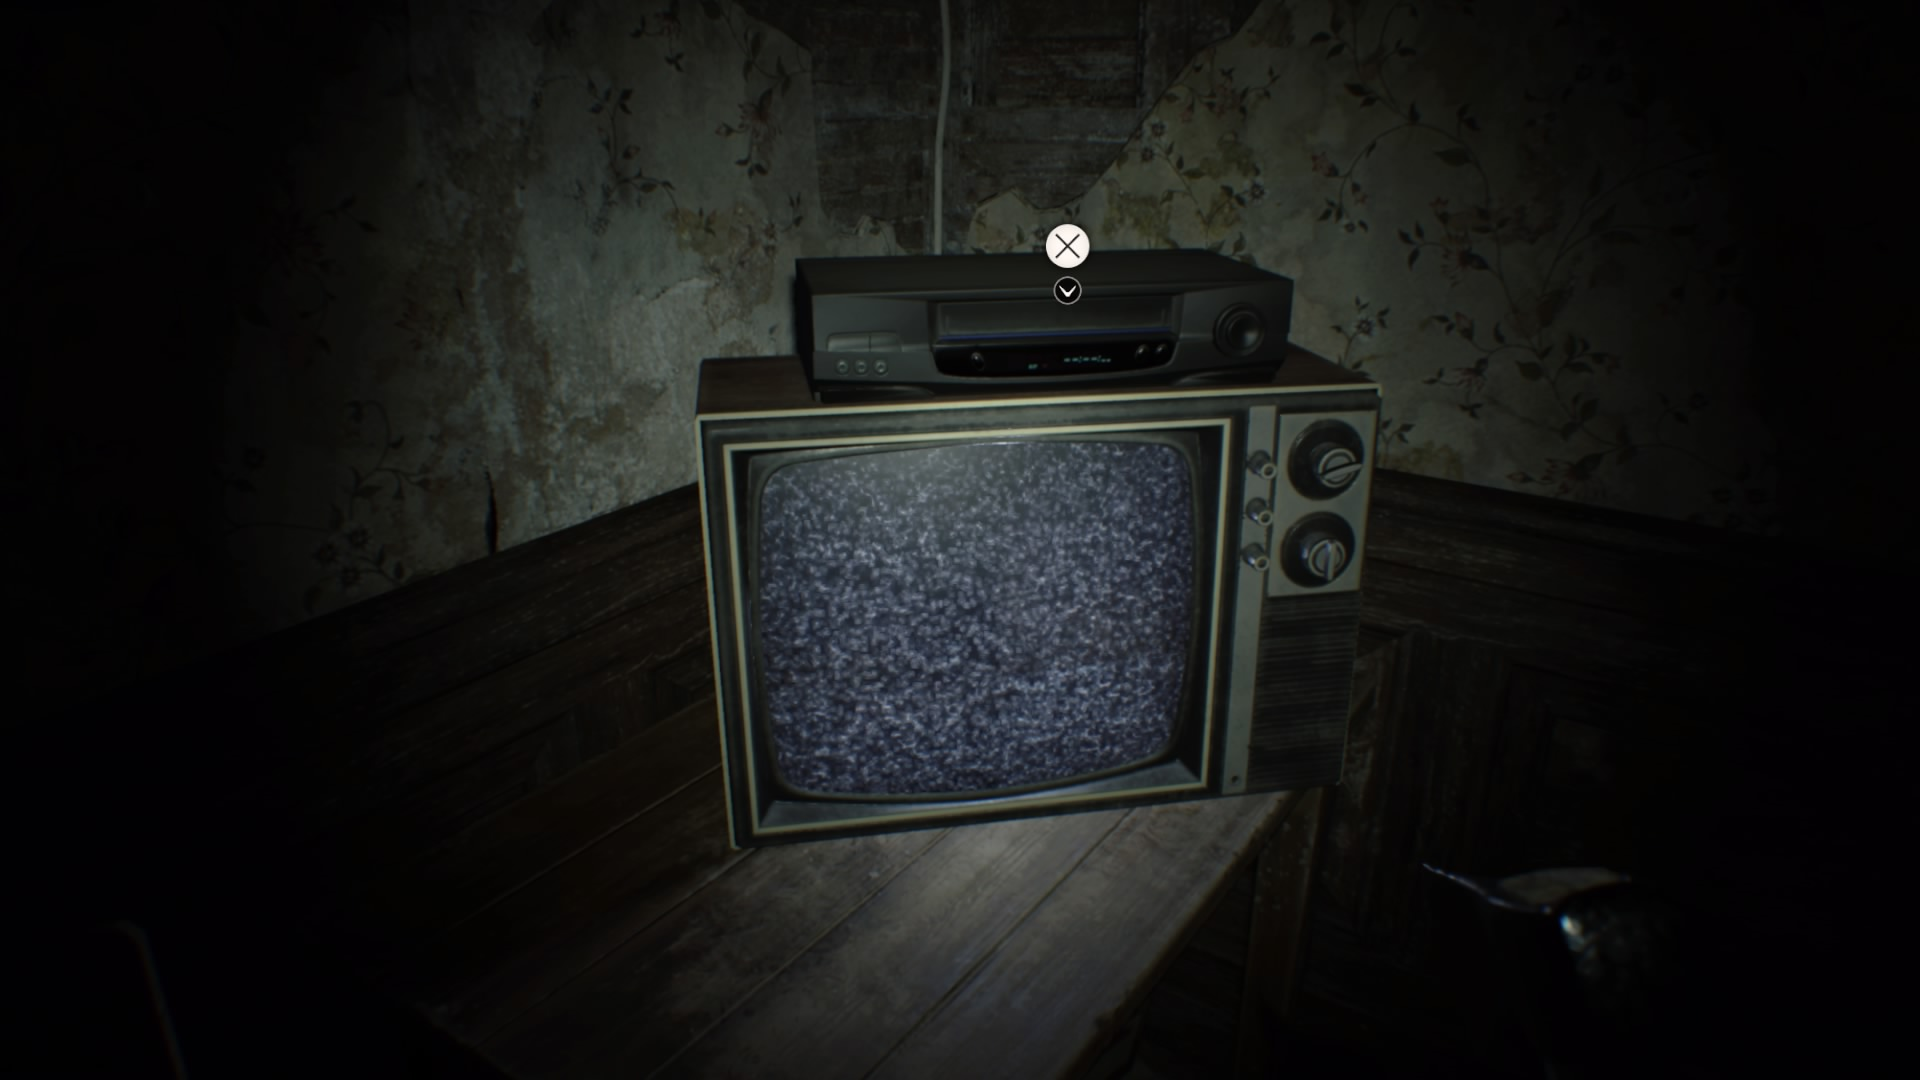 resident evil 7 players guide